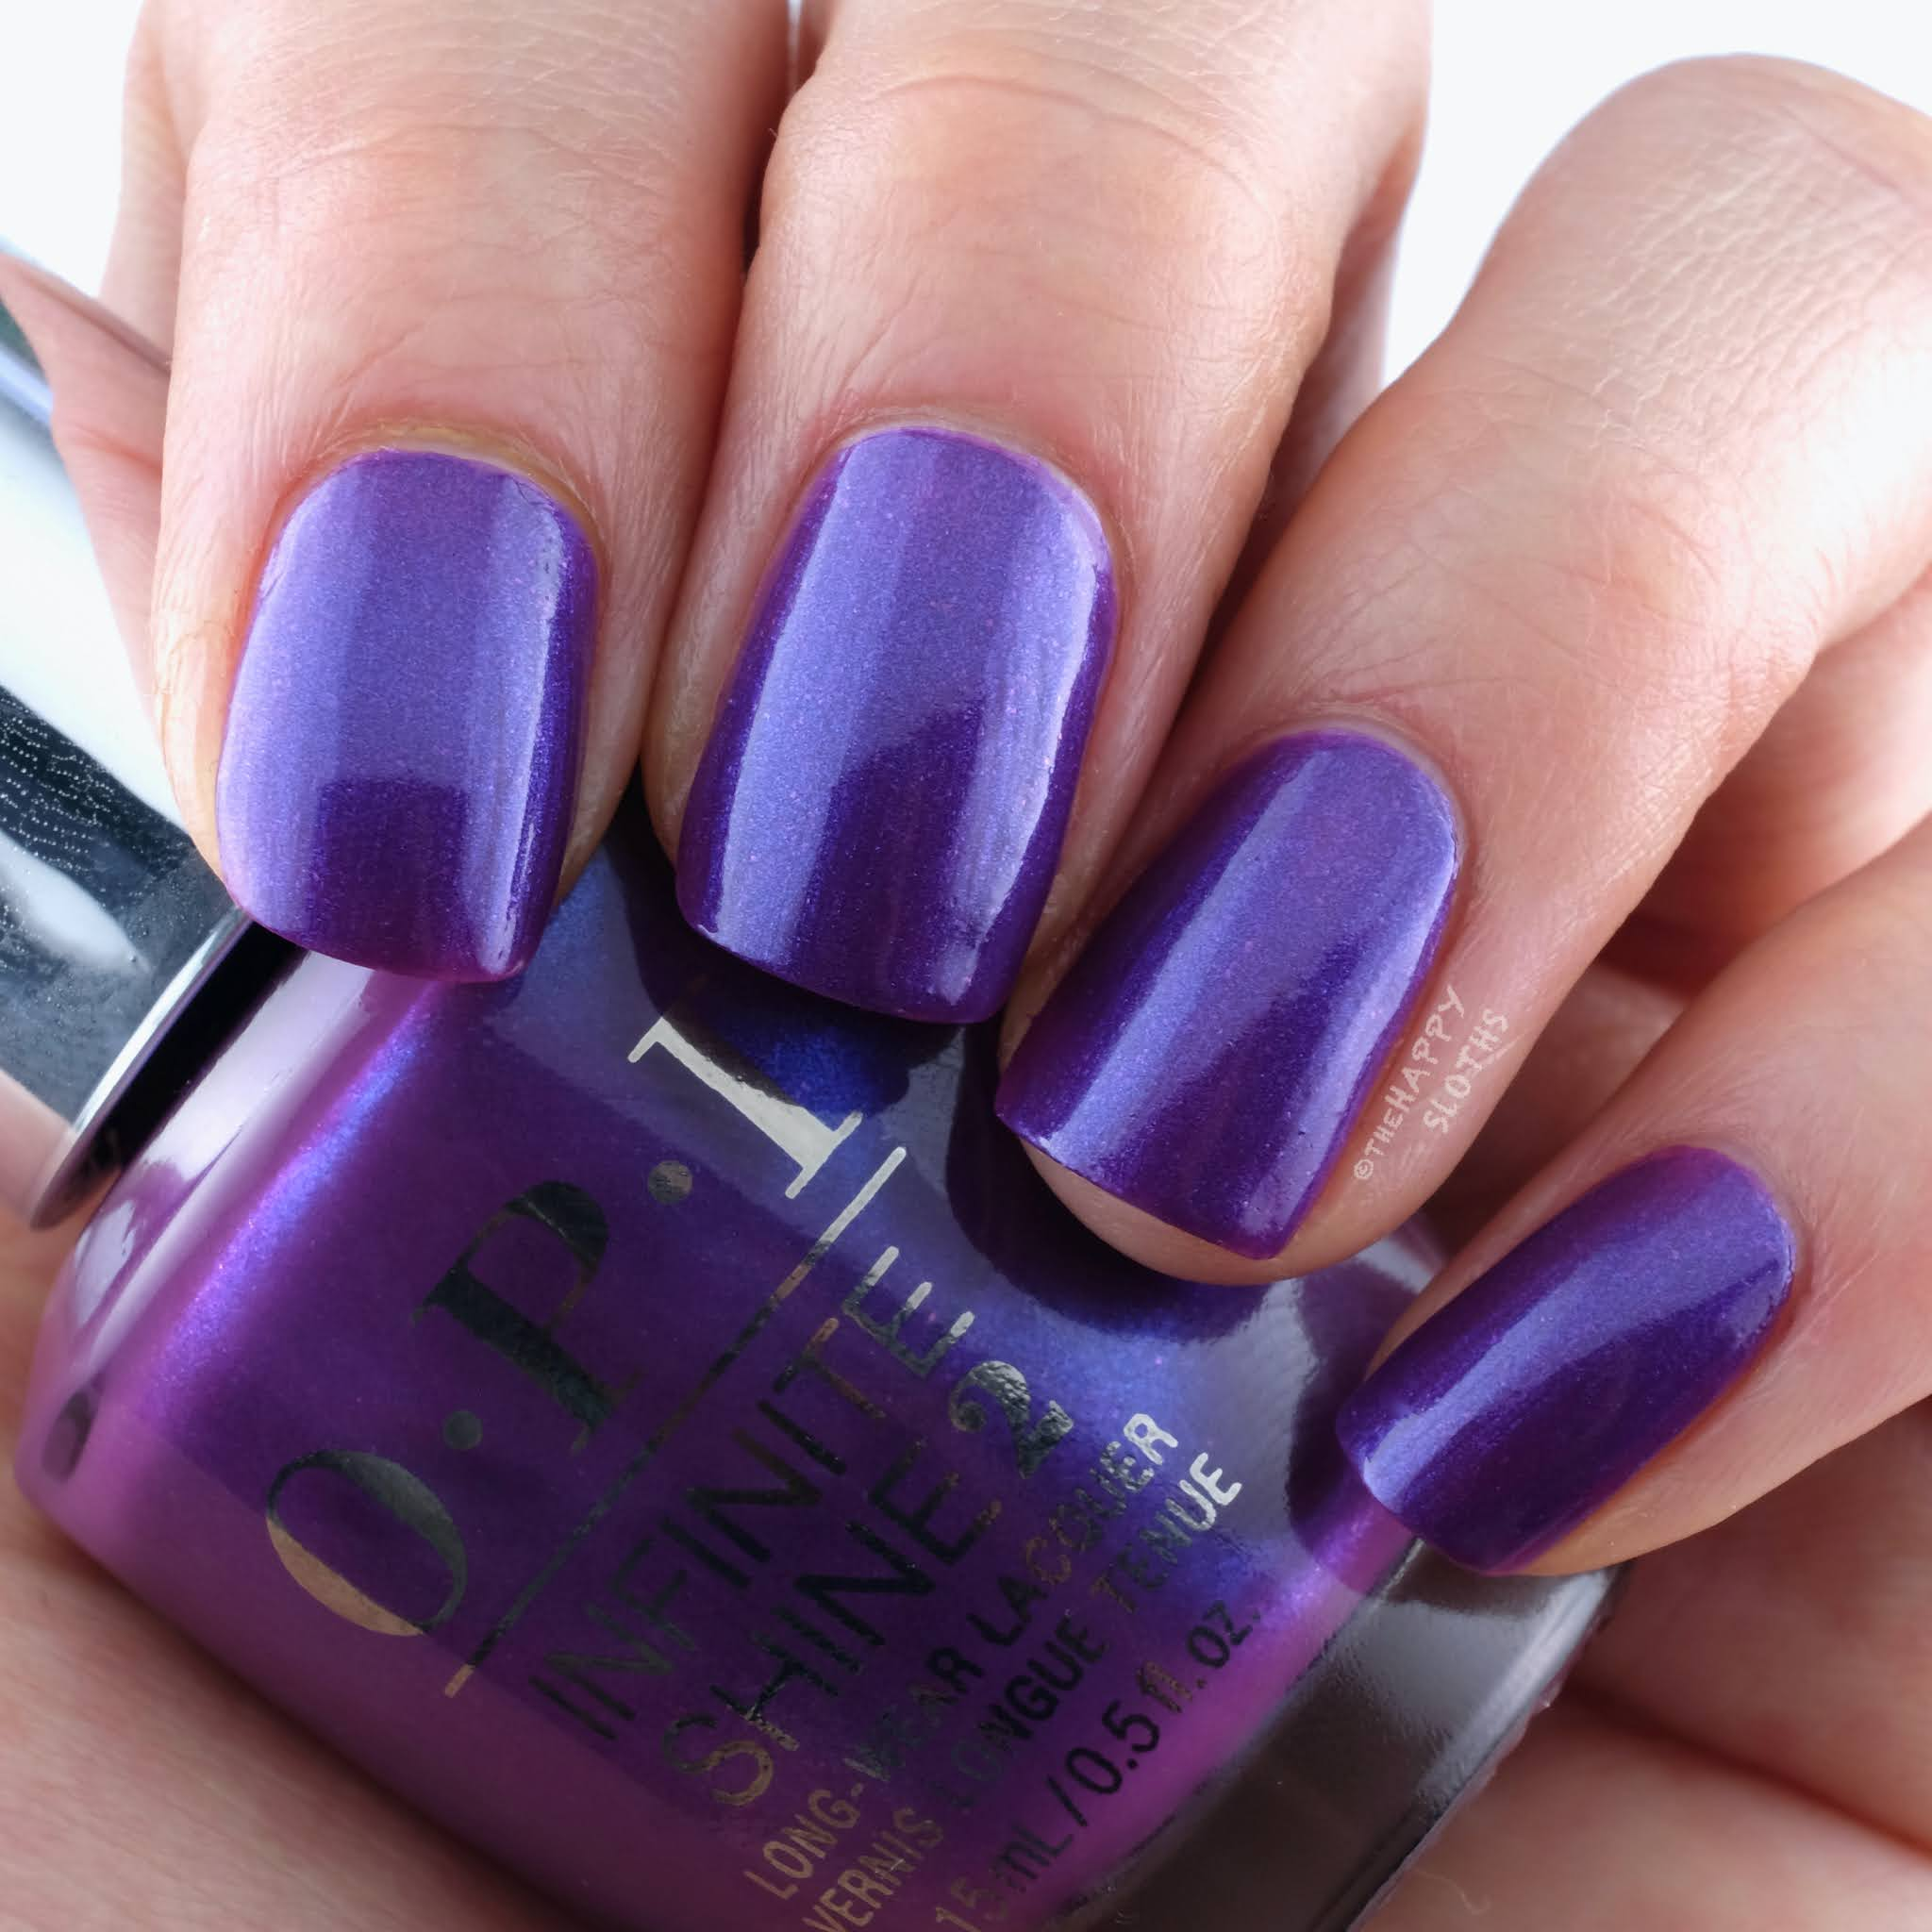 OPI Summer 2021 Malibu Collection   The Sound of Vibrance: Review and Swatches